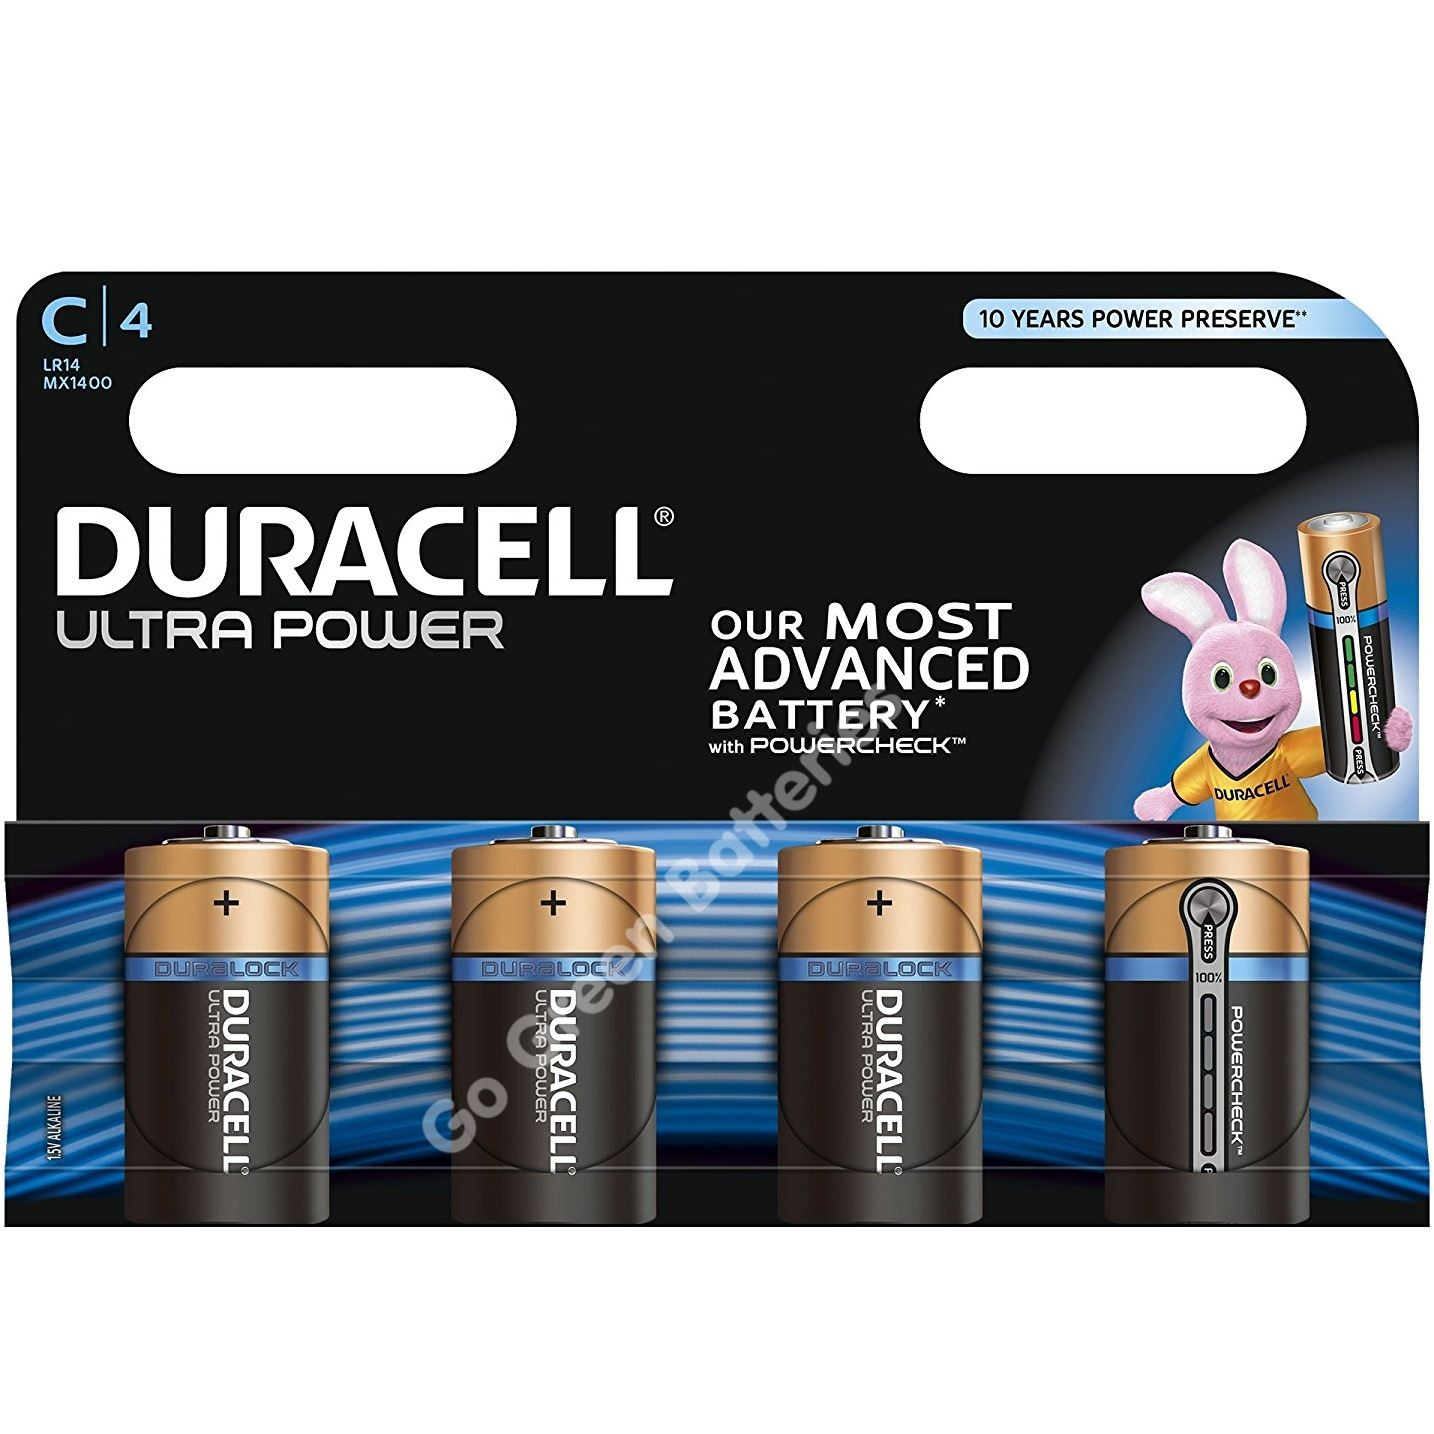 Image Result For Which Lasts Longer Energizer Or Duracell Battery